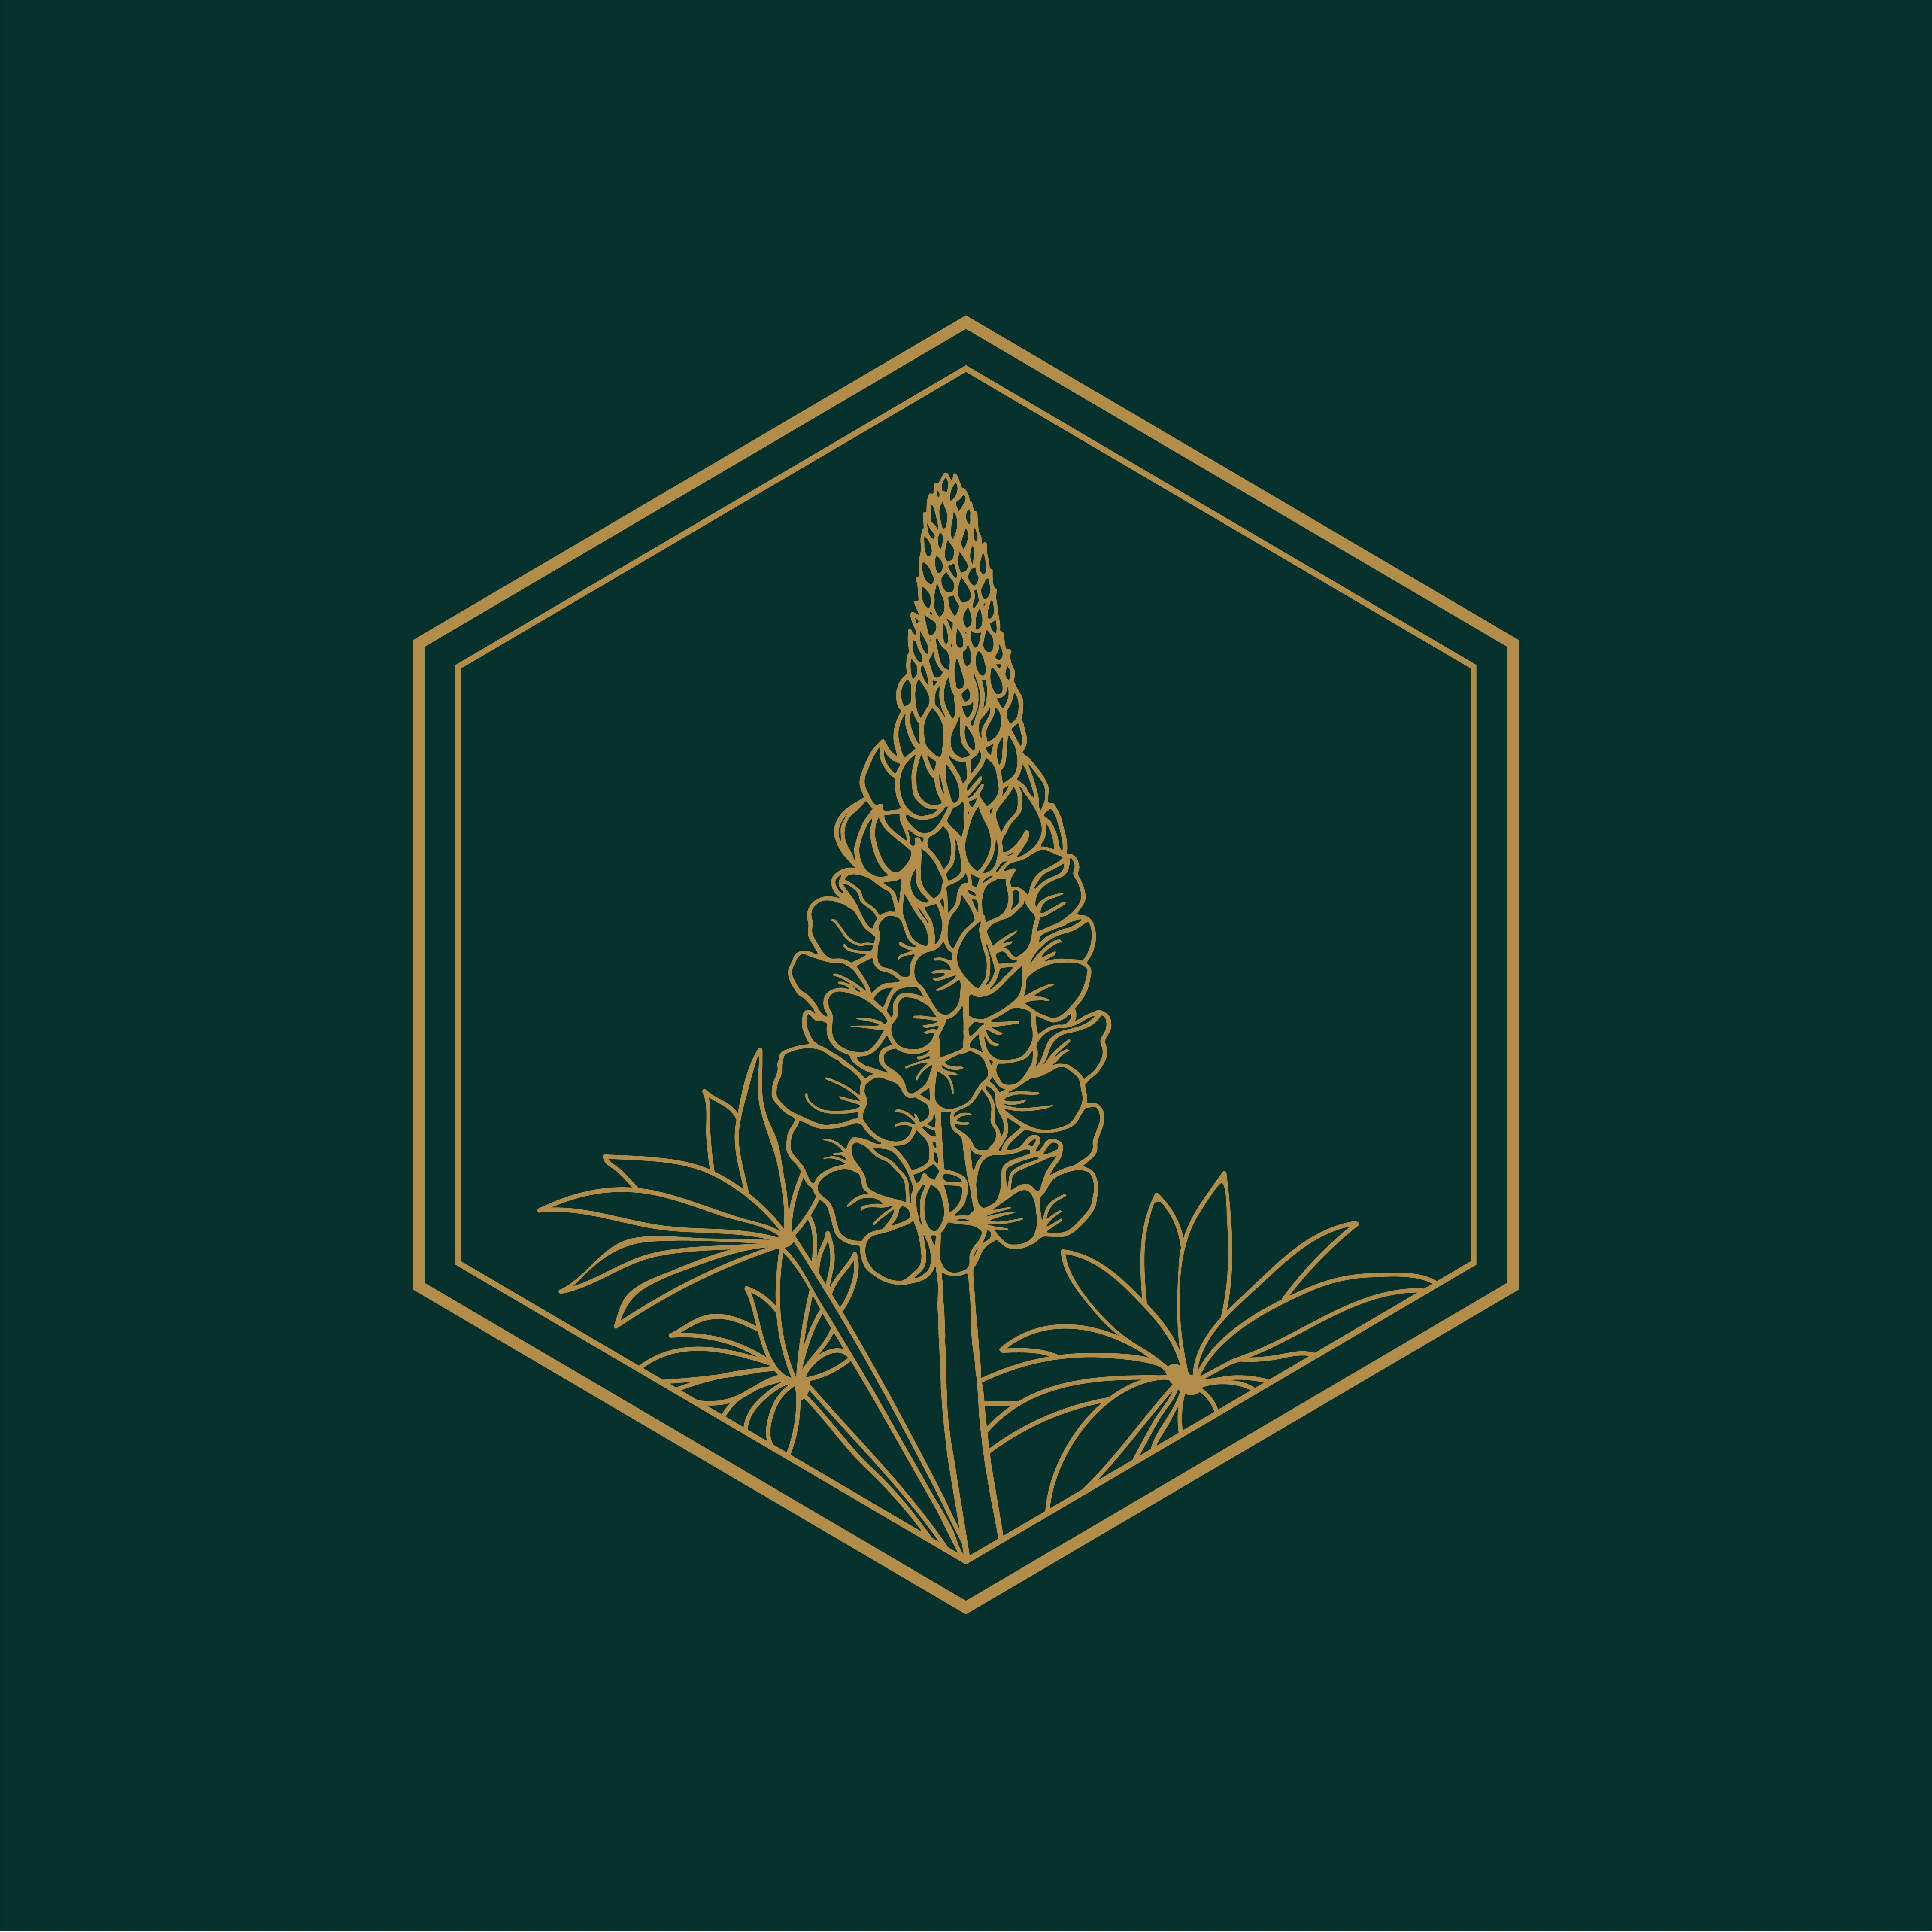 Hunter green and gold floral logo icon design. Wedding